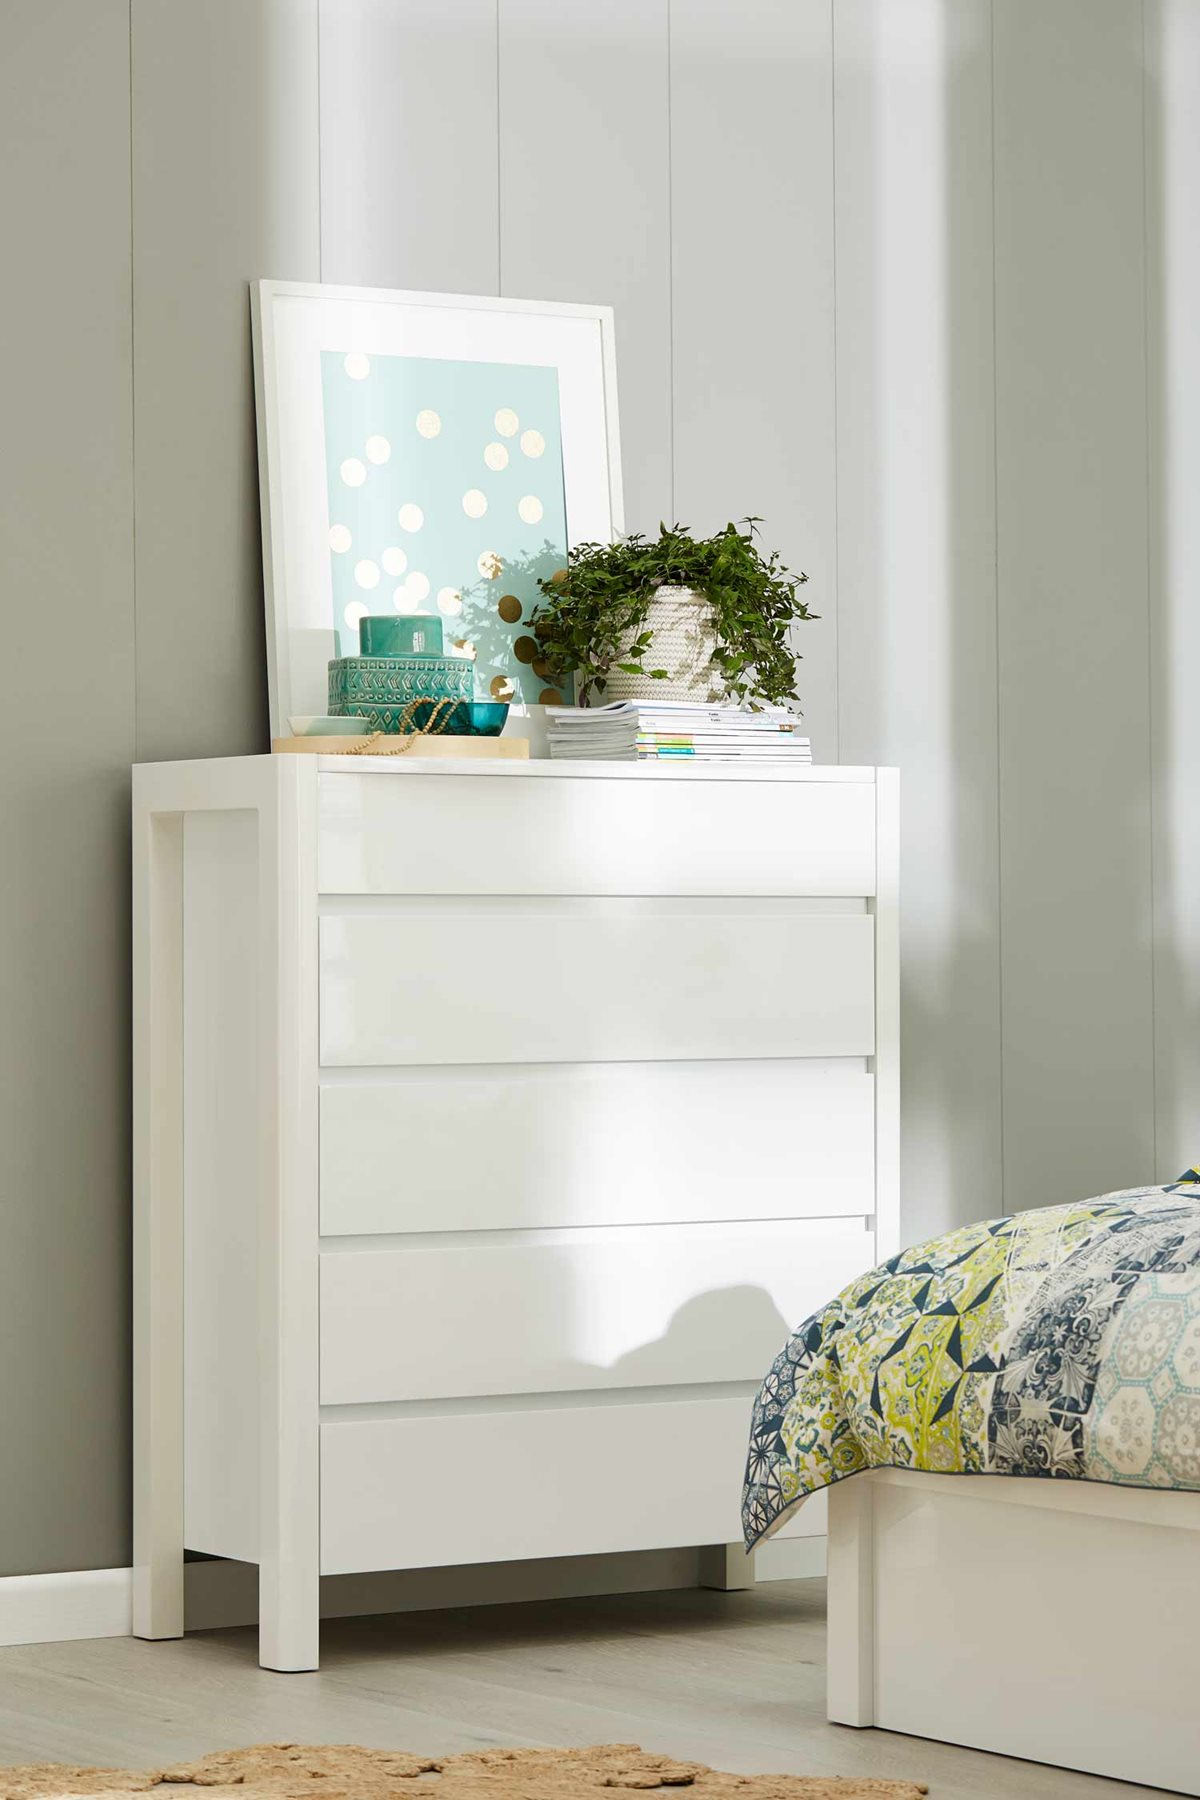 New York Tallboy 5 Drawer Gloss White Bedroom Furniture Forty Winks